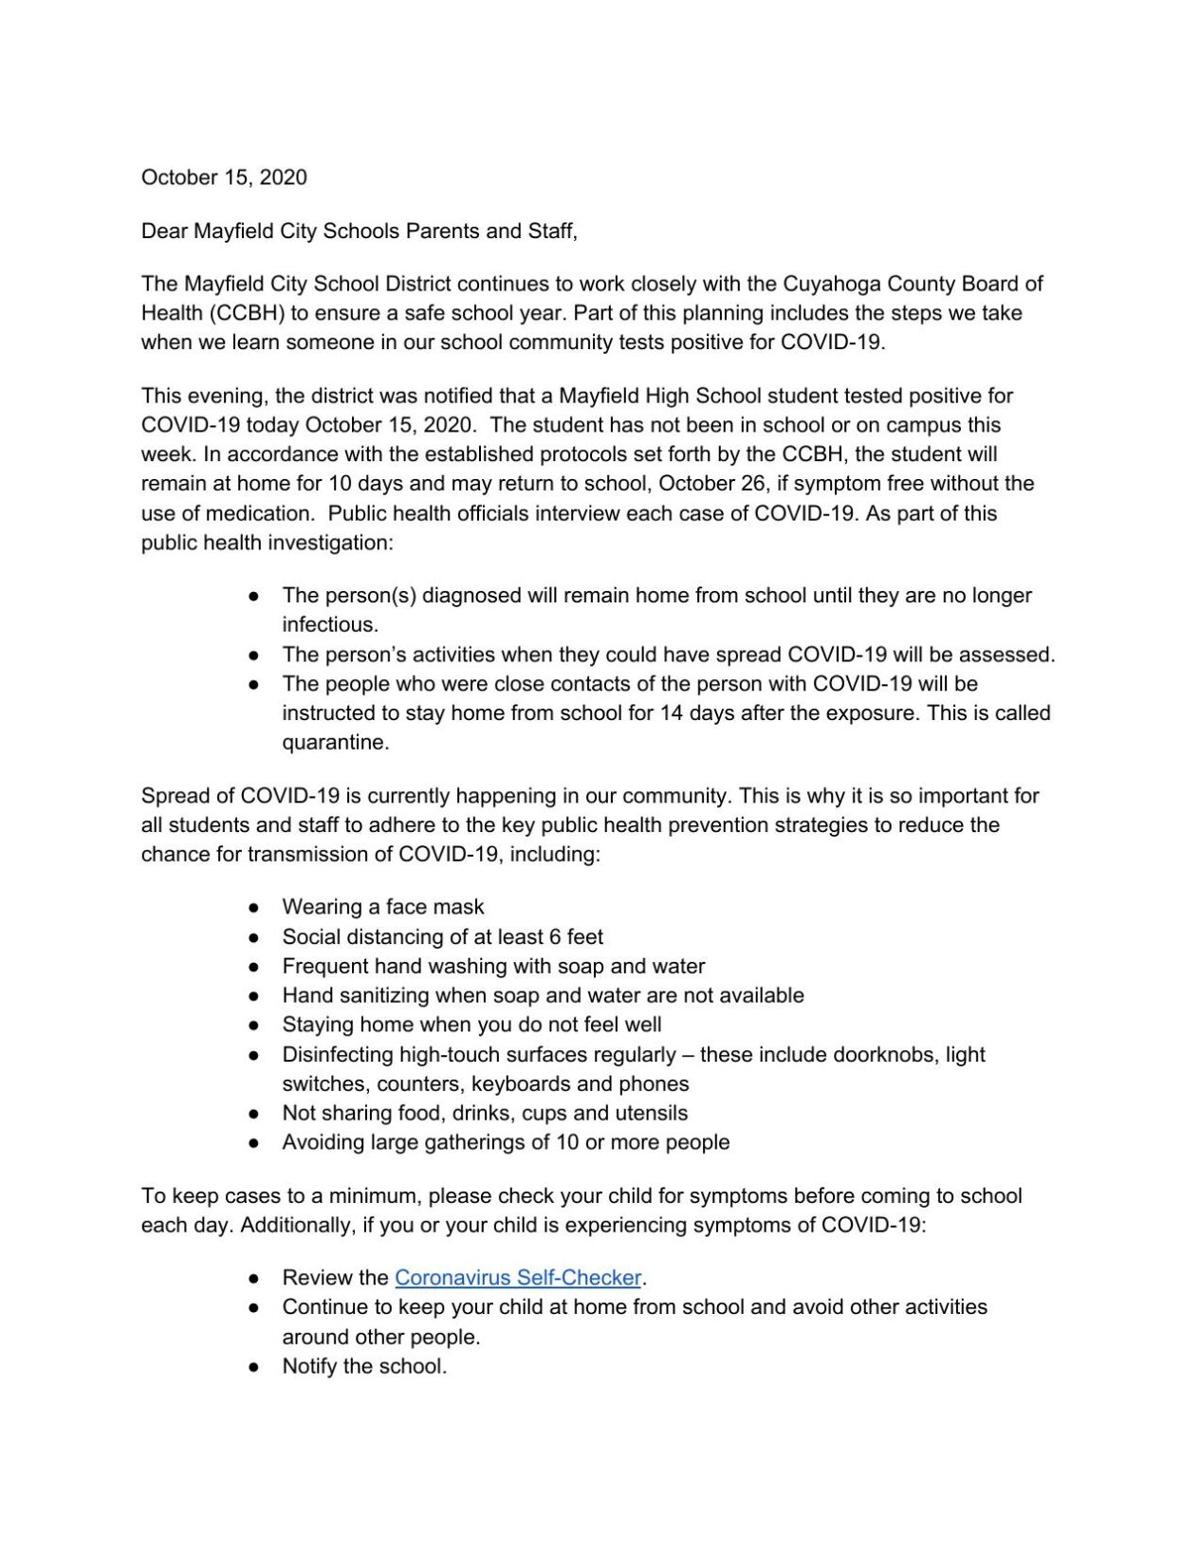 Mayfield City Schools letter Oct. 15, 2020